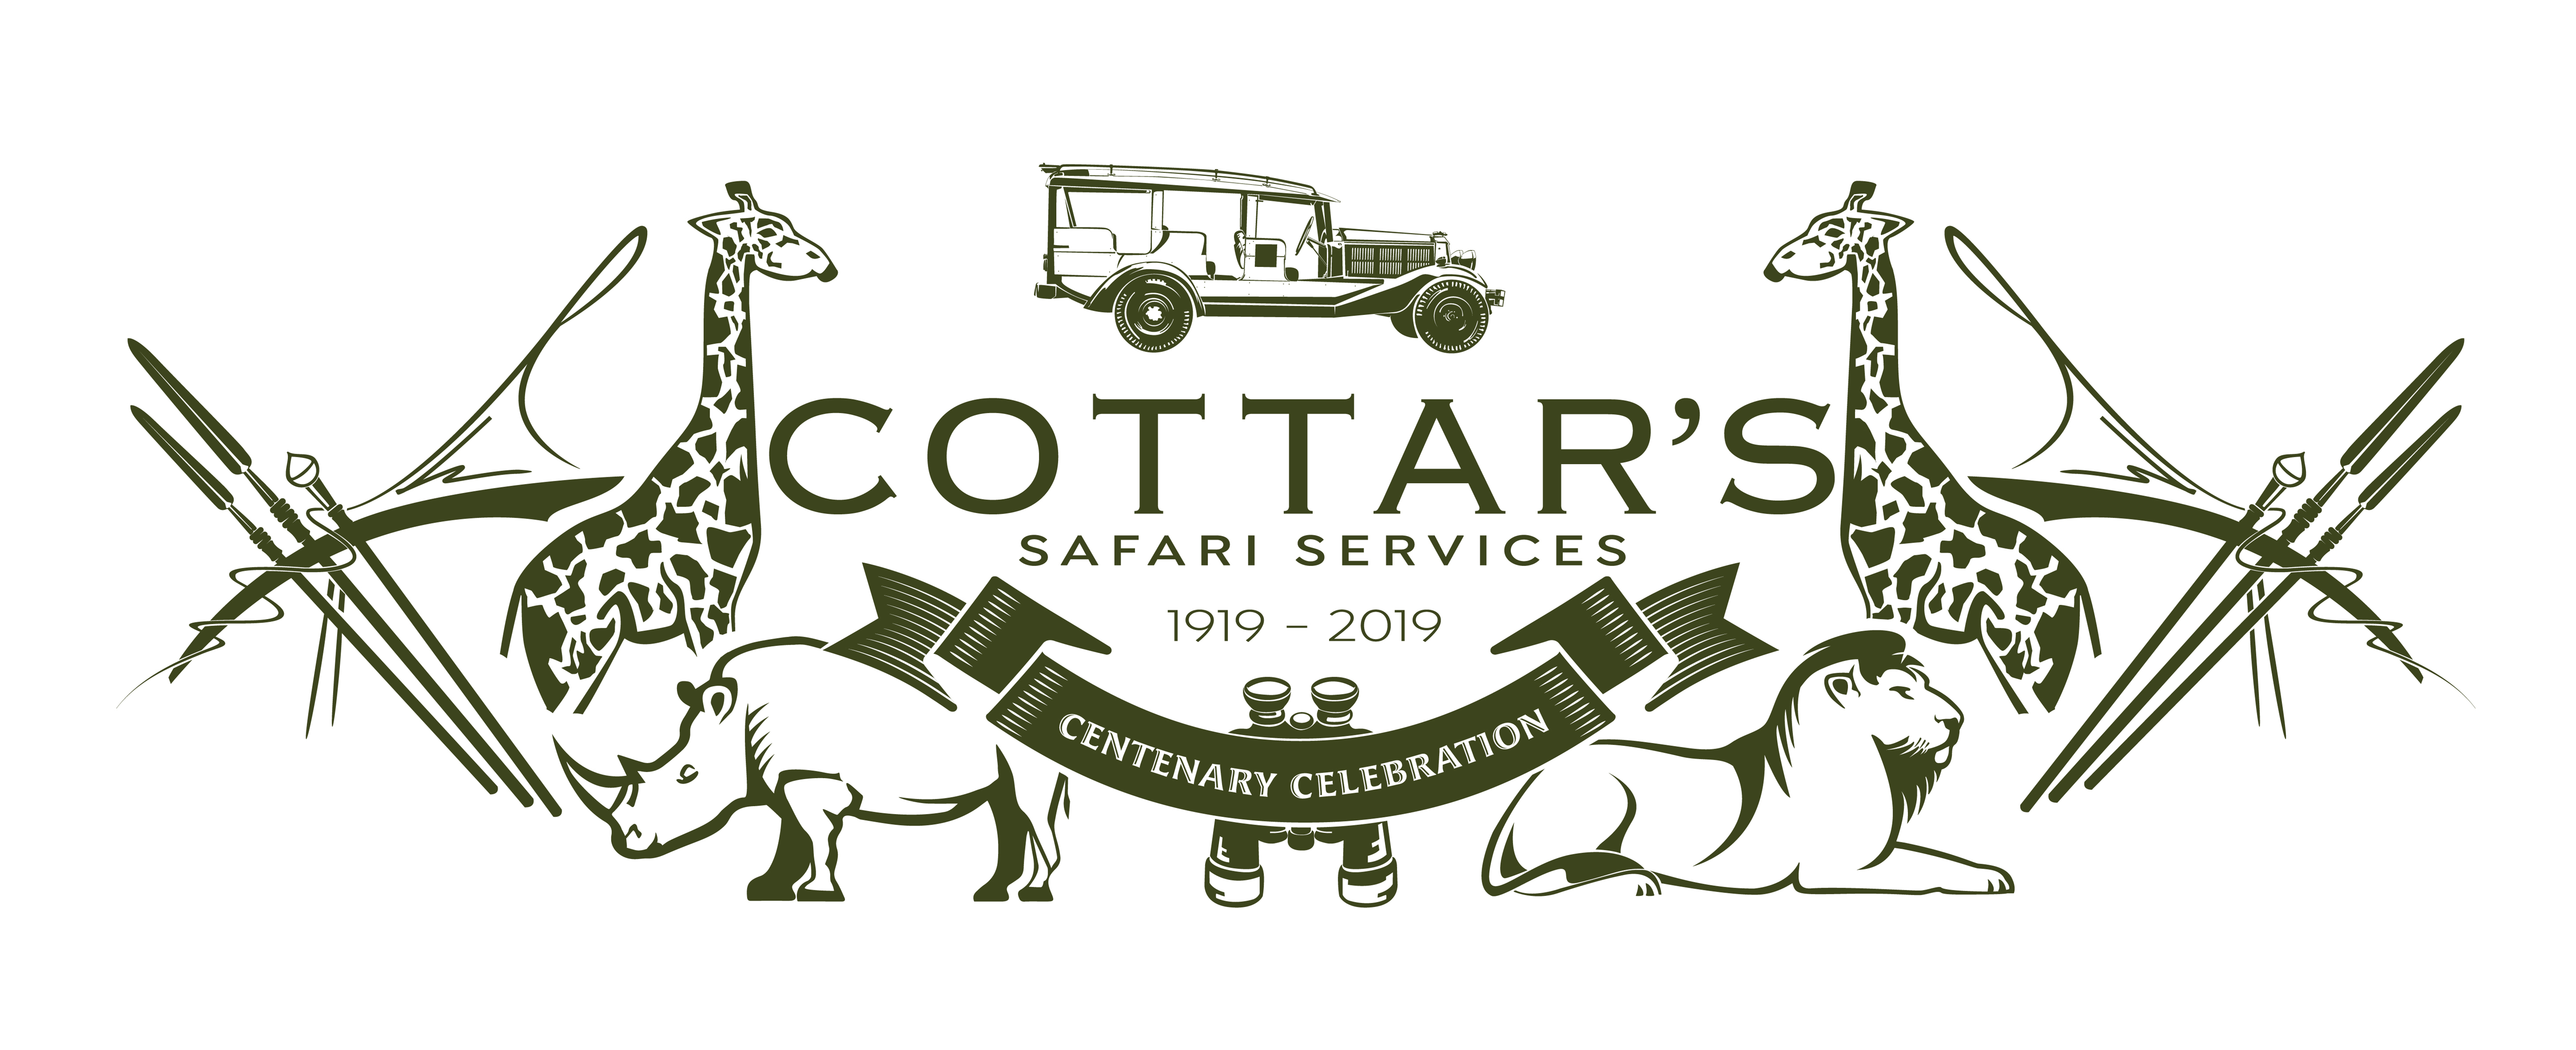 Cottars Safari Service